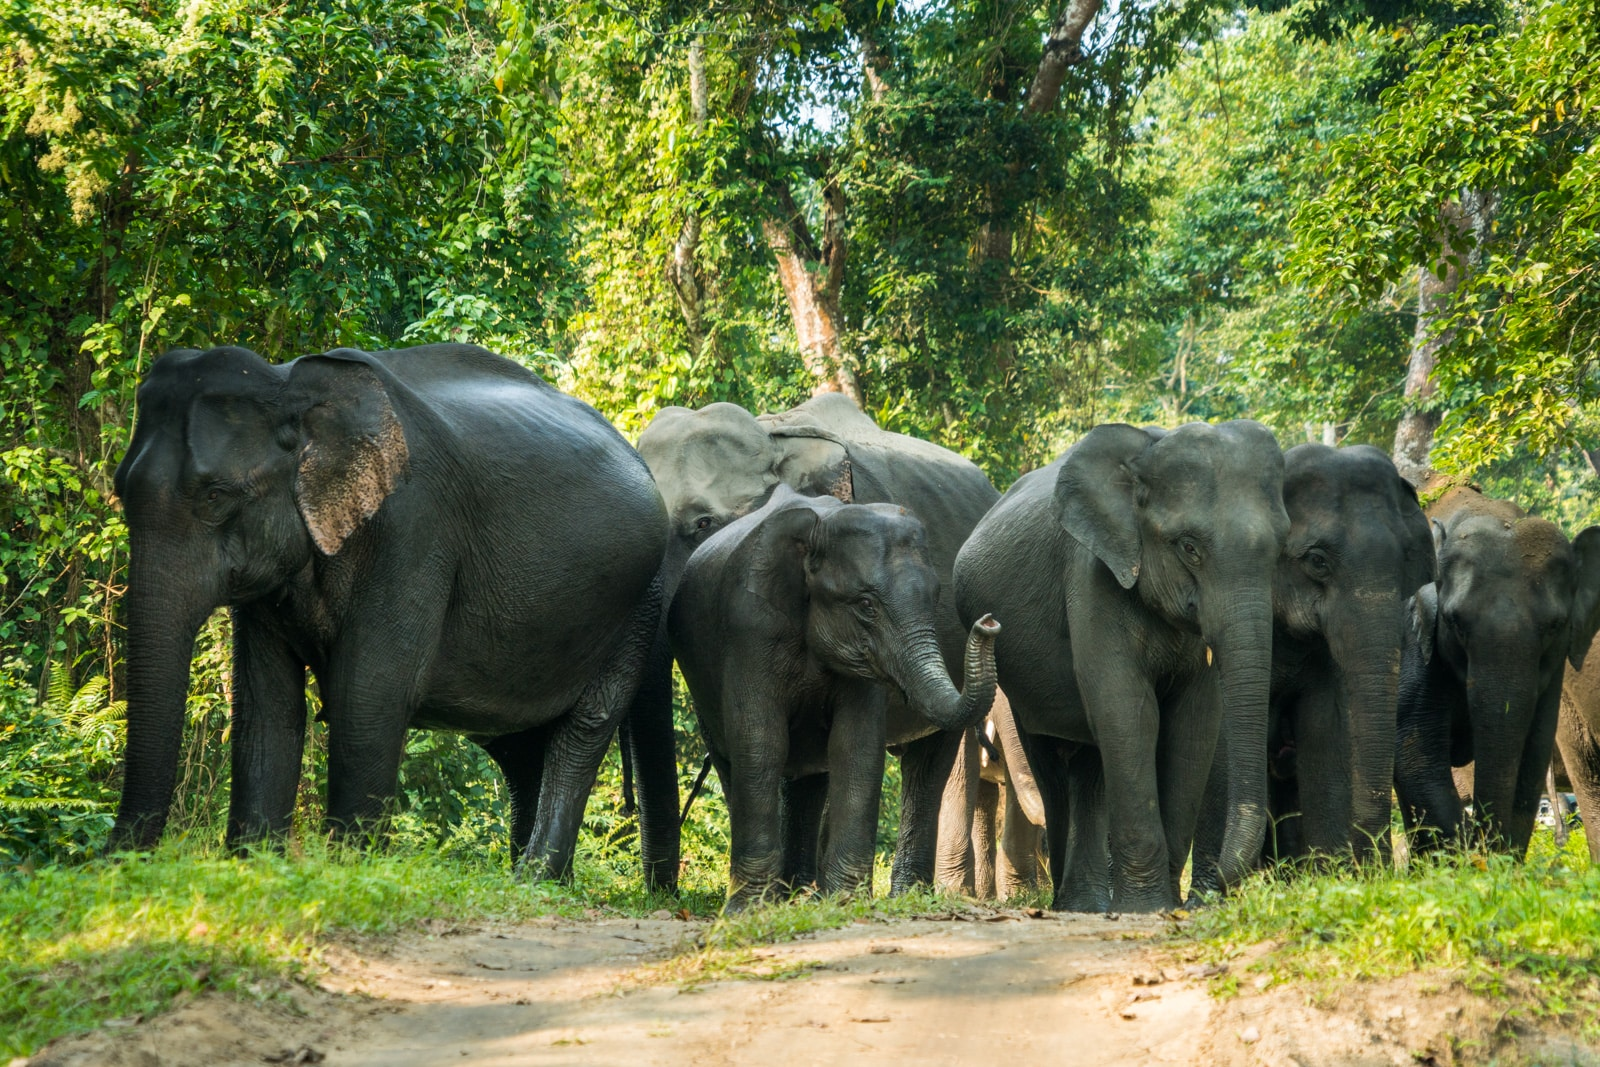 River cruising with Assam Bengal Navigation in India - Herd of wild elephants crossing the road in Kaziranga National Park - Lost With Purpose travel blog